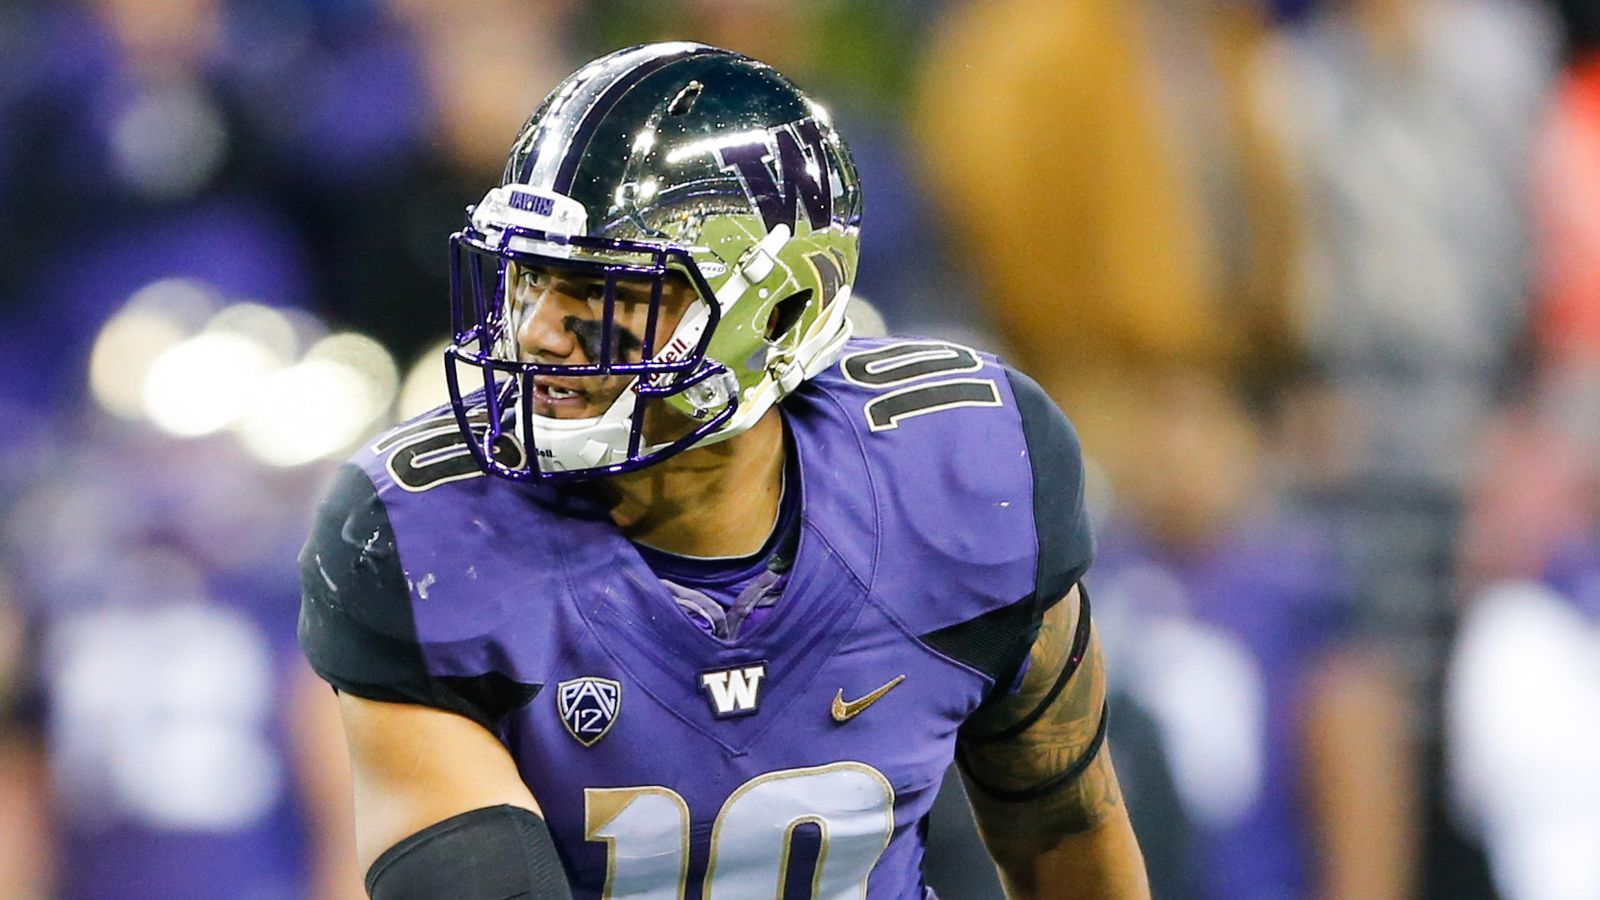 Nike jerseys for wholesale - Five Questions With UW Dawg Pound About John Timu - Windy City ...